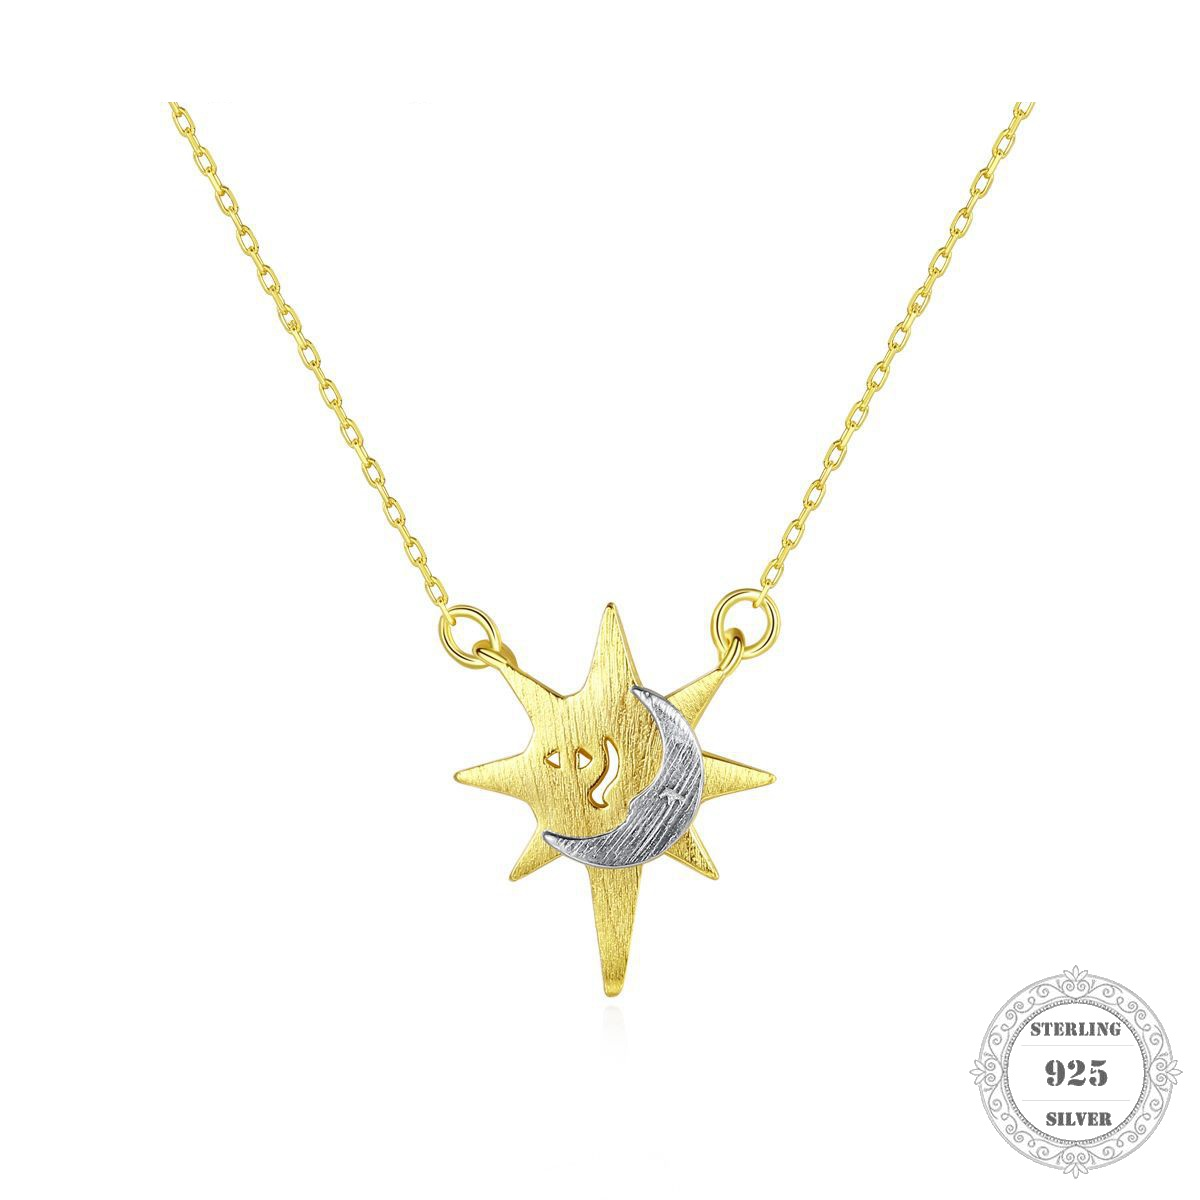 Charm Necklace Moon & Star,2020 Spring Brand New Ts Fashion Charm Jewelry Thomas 925 Sterling Silver Bijoux Gift For Women Men